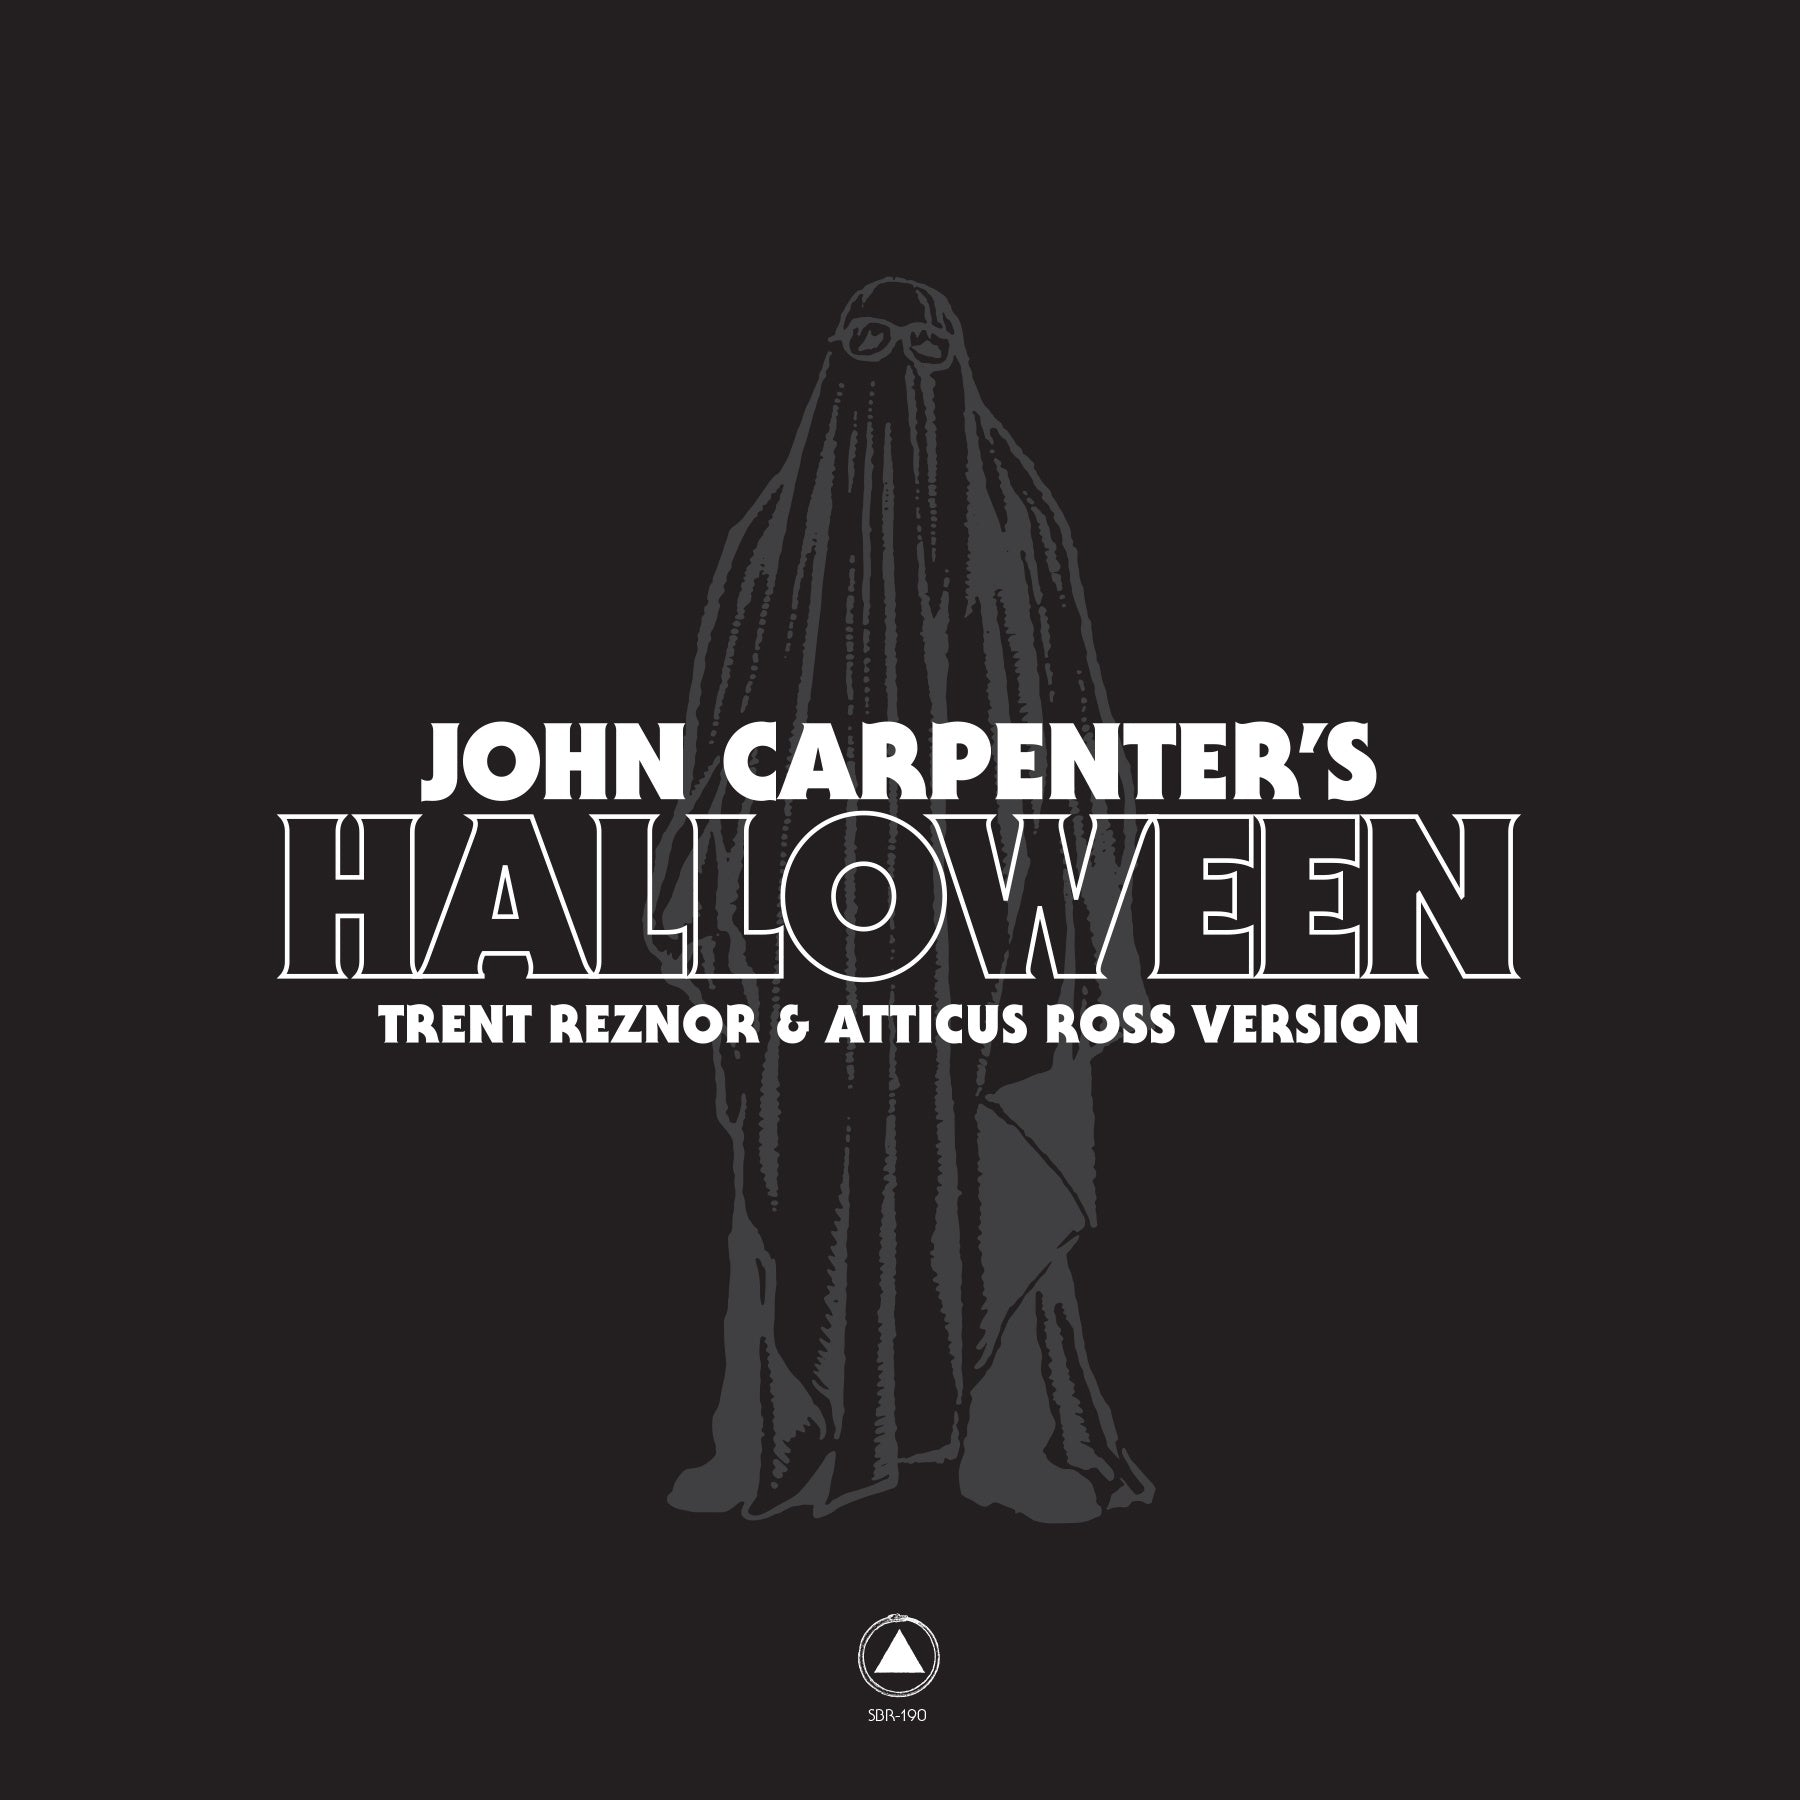 "Trent Reznor and Atticus Ross - John Carpenter's Halloween - New 12"" Single 2018 Sacred Bones Vinyl - Soundtrack"